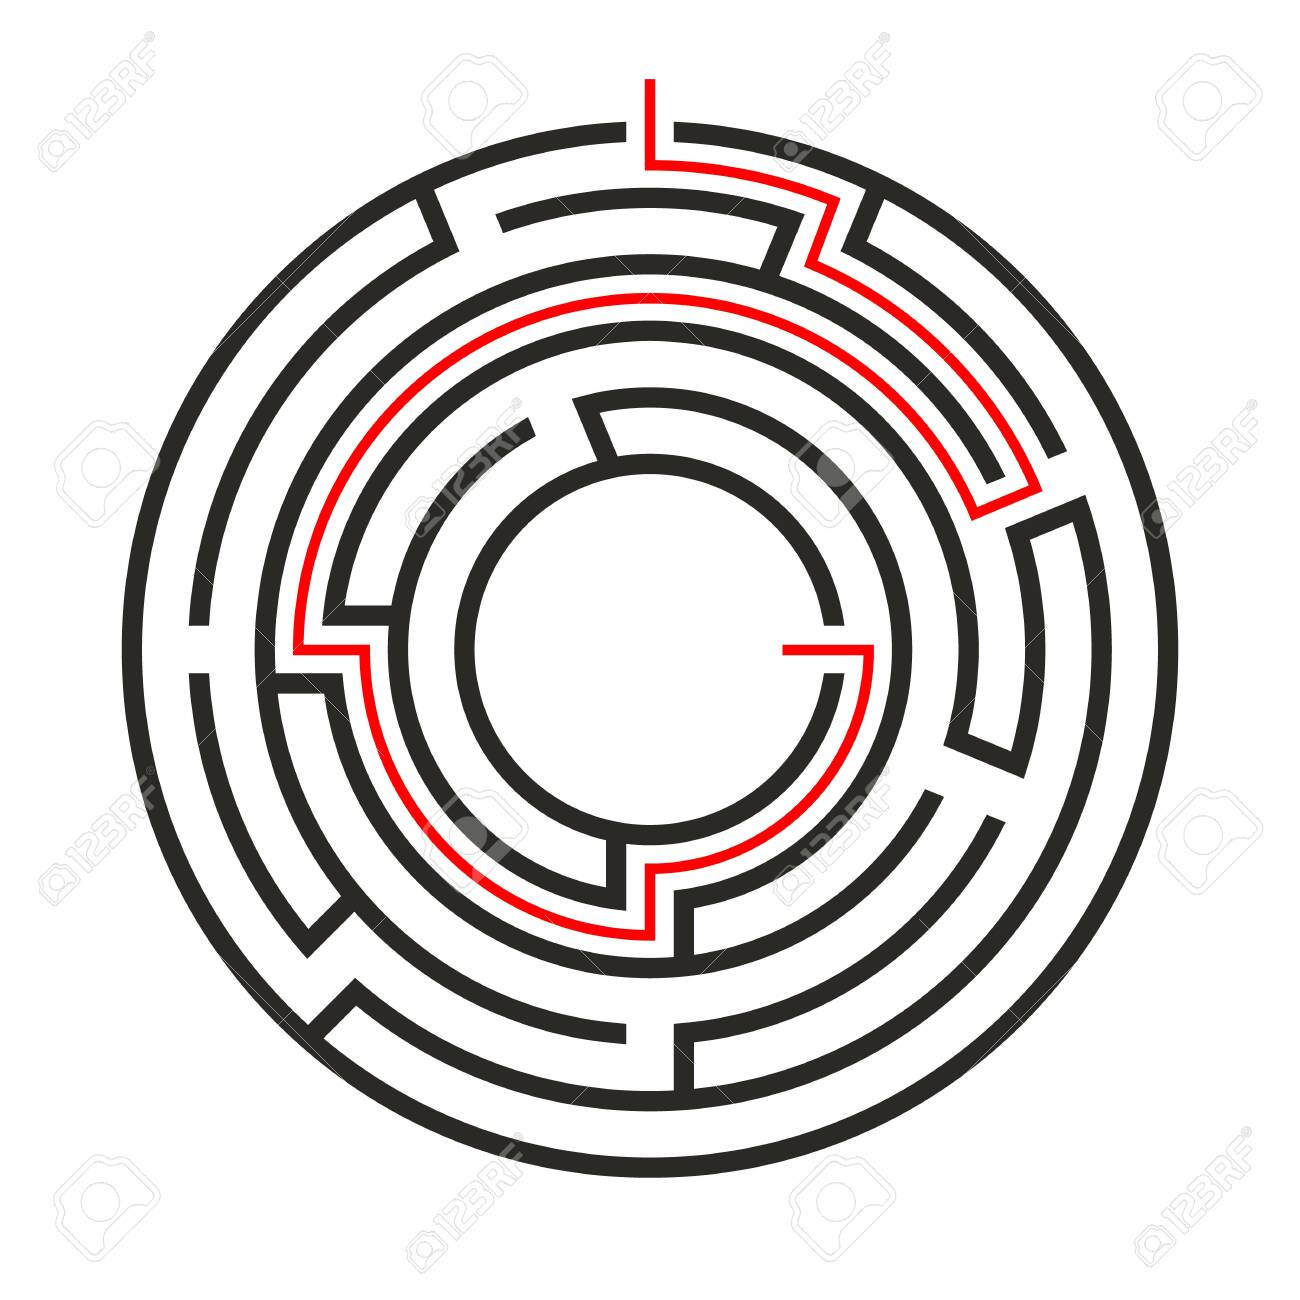 Education logic game circle labyrinth for kids  Find right way